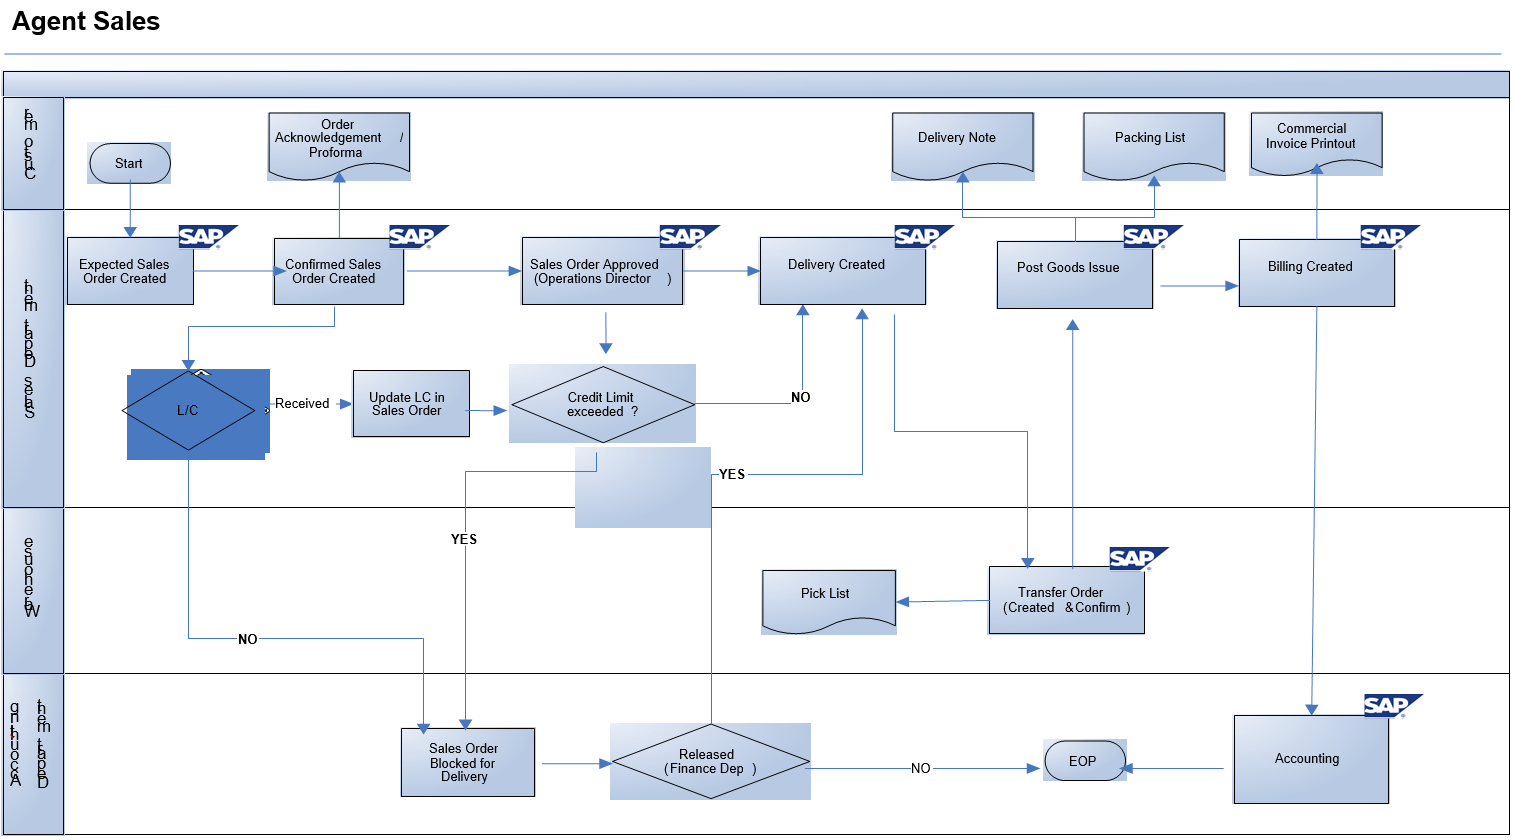 Sap sd business blueprint export sales process scenario and flow export sales process flow diagram in sap sd pooptronica Image collections